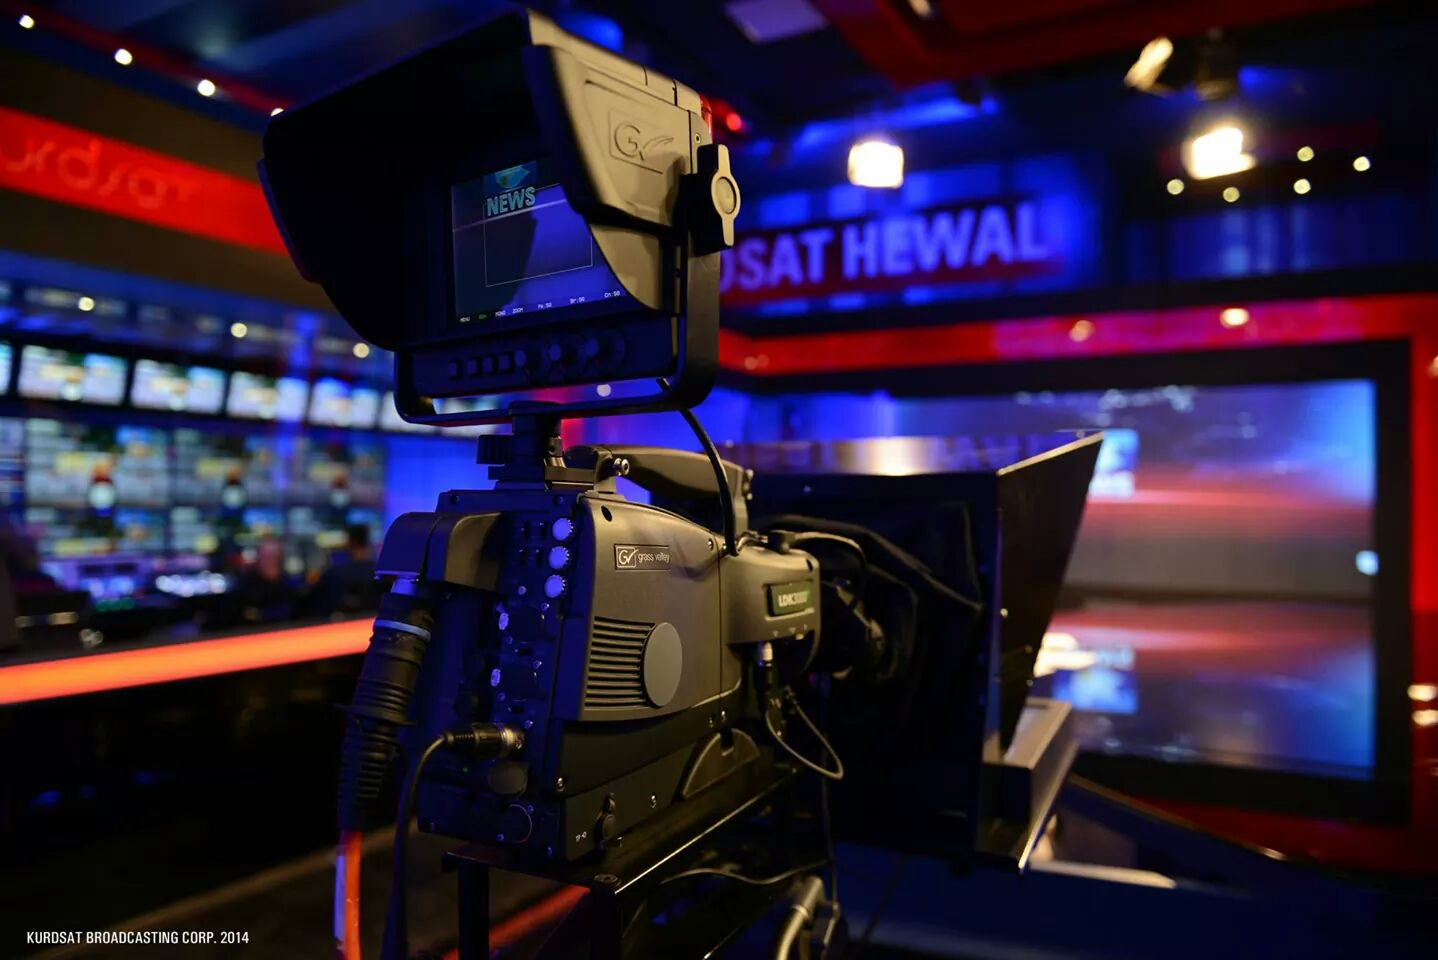 KURDSAT PROJECTS - News studio designed and installed by BSS for Kurdsat